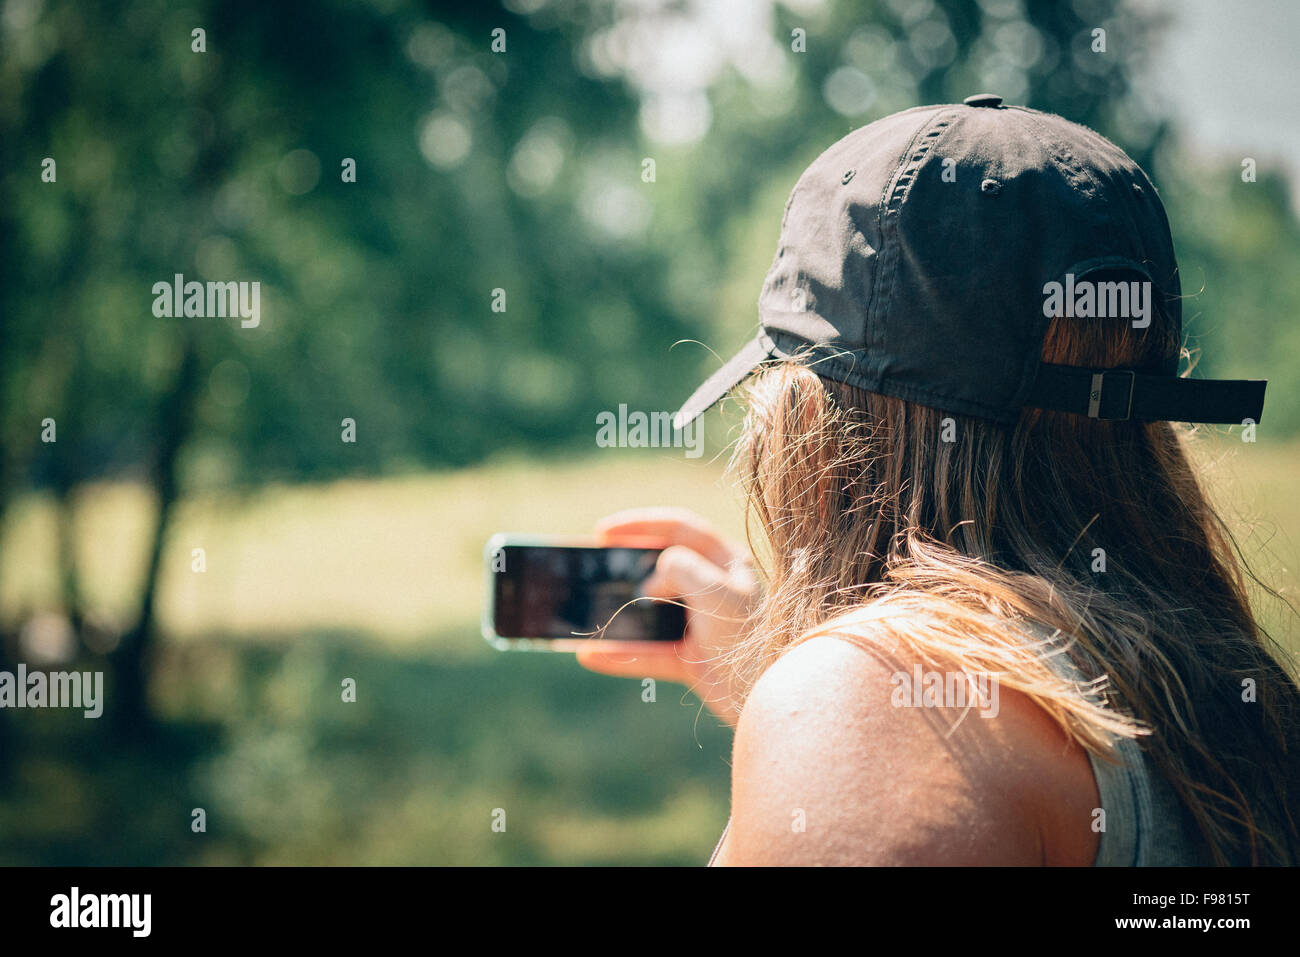 Rear View Of Man Clicking Selfie Outdoors - Stock Image